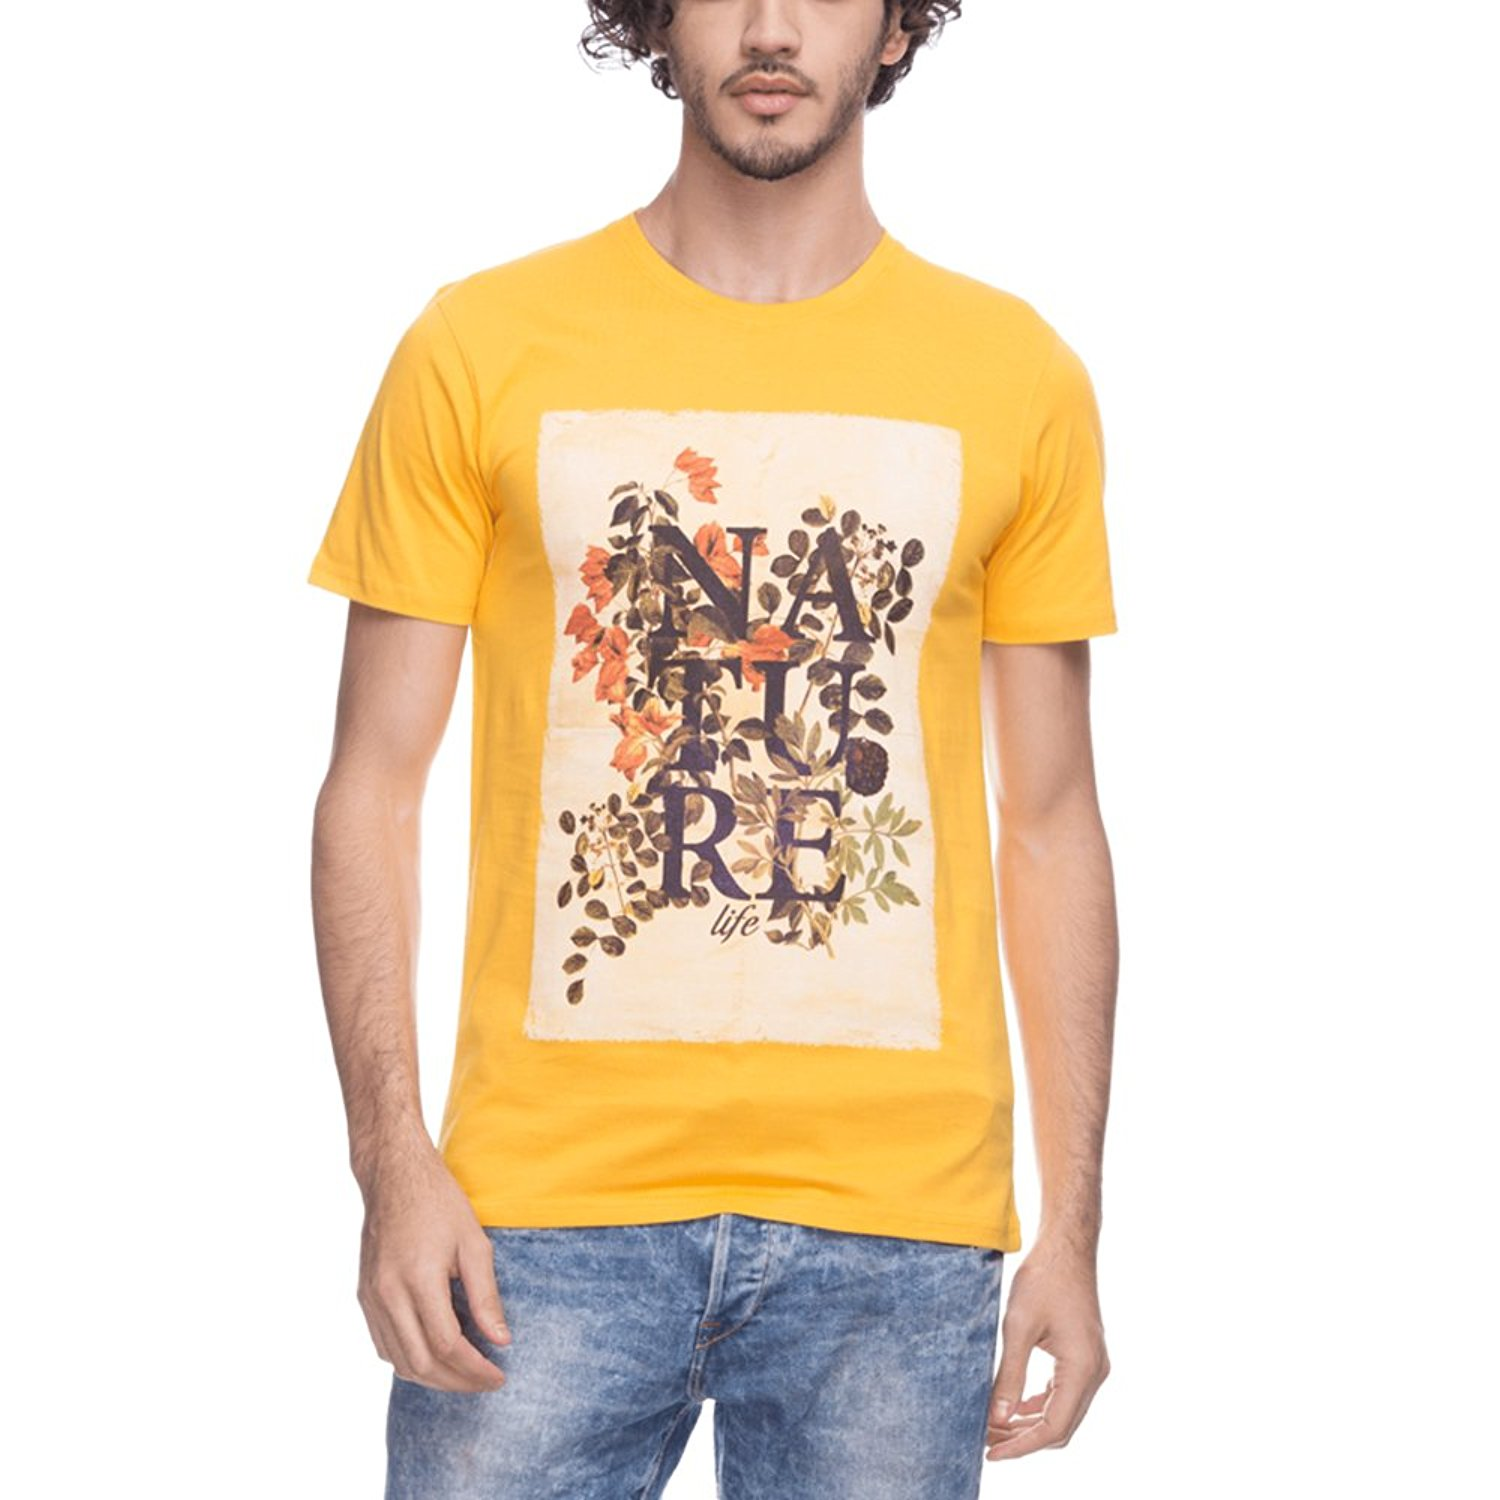 Amazon - Buy Life Men Graphic Print T-shirt Starting from Rs.179